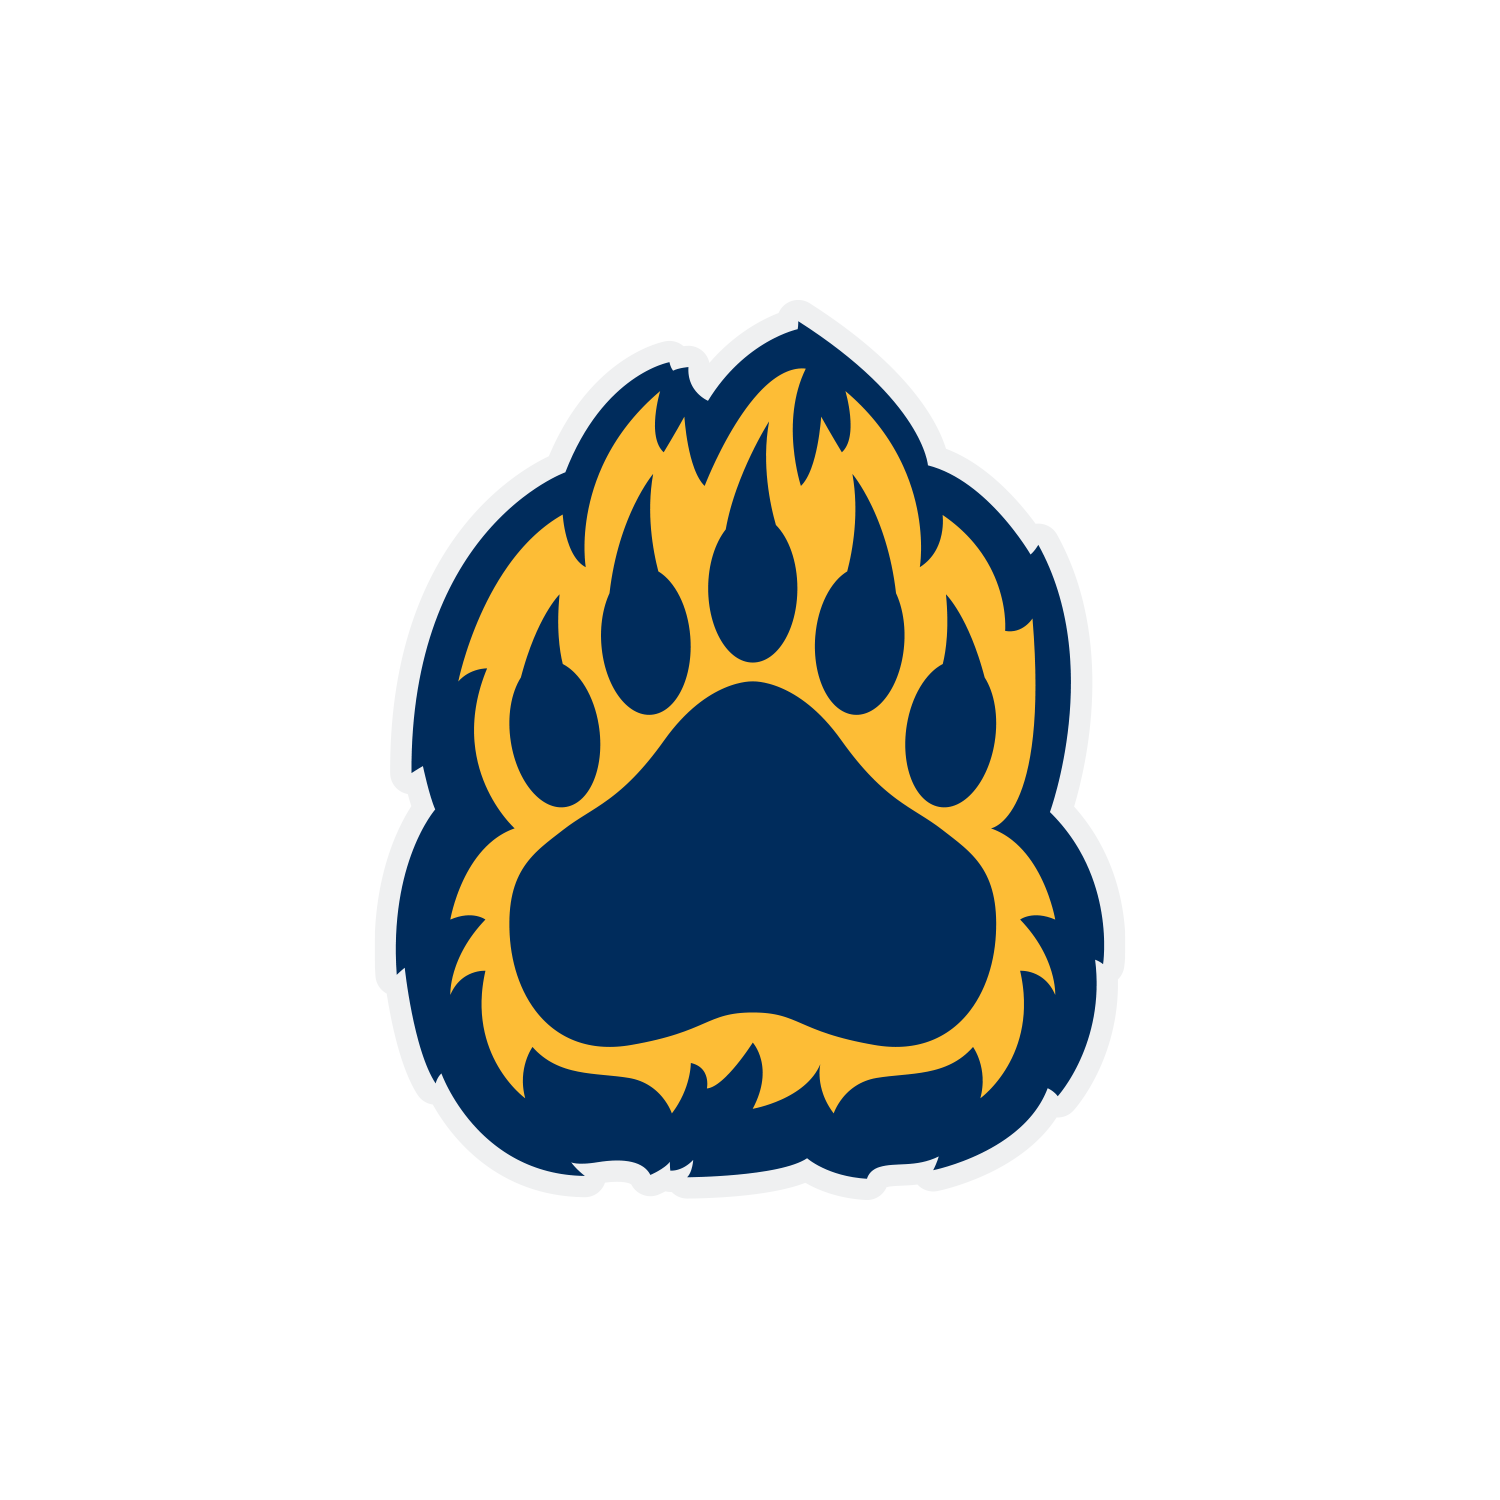 Bears Village - Bear Paw Logo Design - Greeley, CO Apartments